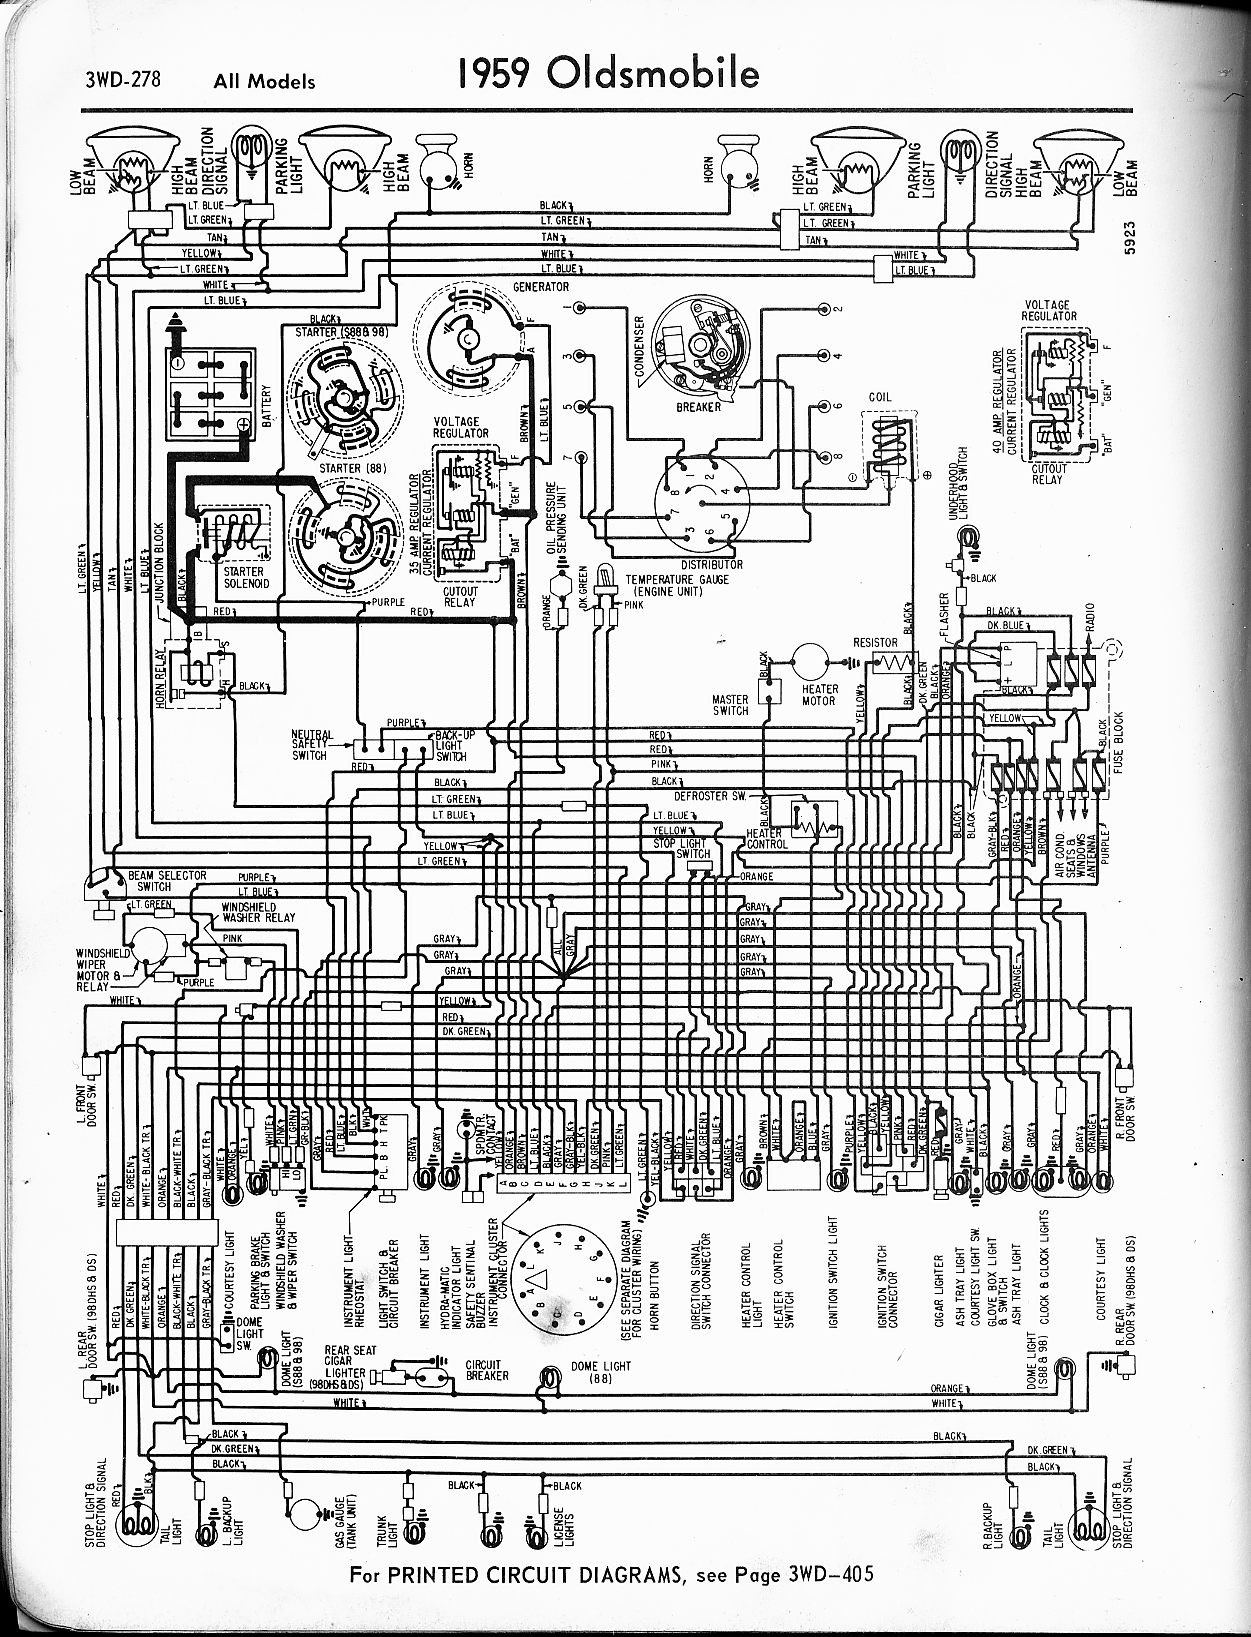 Oldsmobile Aurora Wiring Diagram | Wiring Diagram on 2000 intrigue engine diagram, smart engine diagram, 2000 alero engine diagram, 1999 alero engine diagram, 2000 eclipse engine diagram, chevelle engine diagram, 1996 bravada engine diagram, vw engine diagram, gmc engine diagram, 2003 alero engine diagram, skoda engine diagram, ranger engine diagram, geo engine diagram, nissan 3.0 engine diagram, 1999 cutlass engine diagram, 2001 alero engine diagram, honda engine diagram, plymouth engine diagram, chevrolet impala engine diagram, 1965 impala engine diagram,